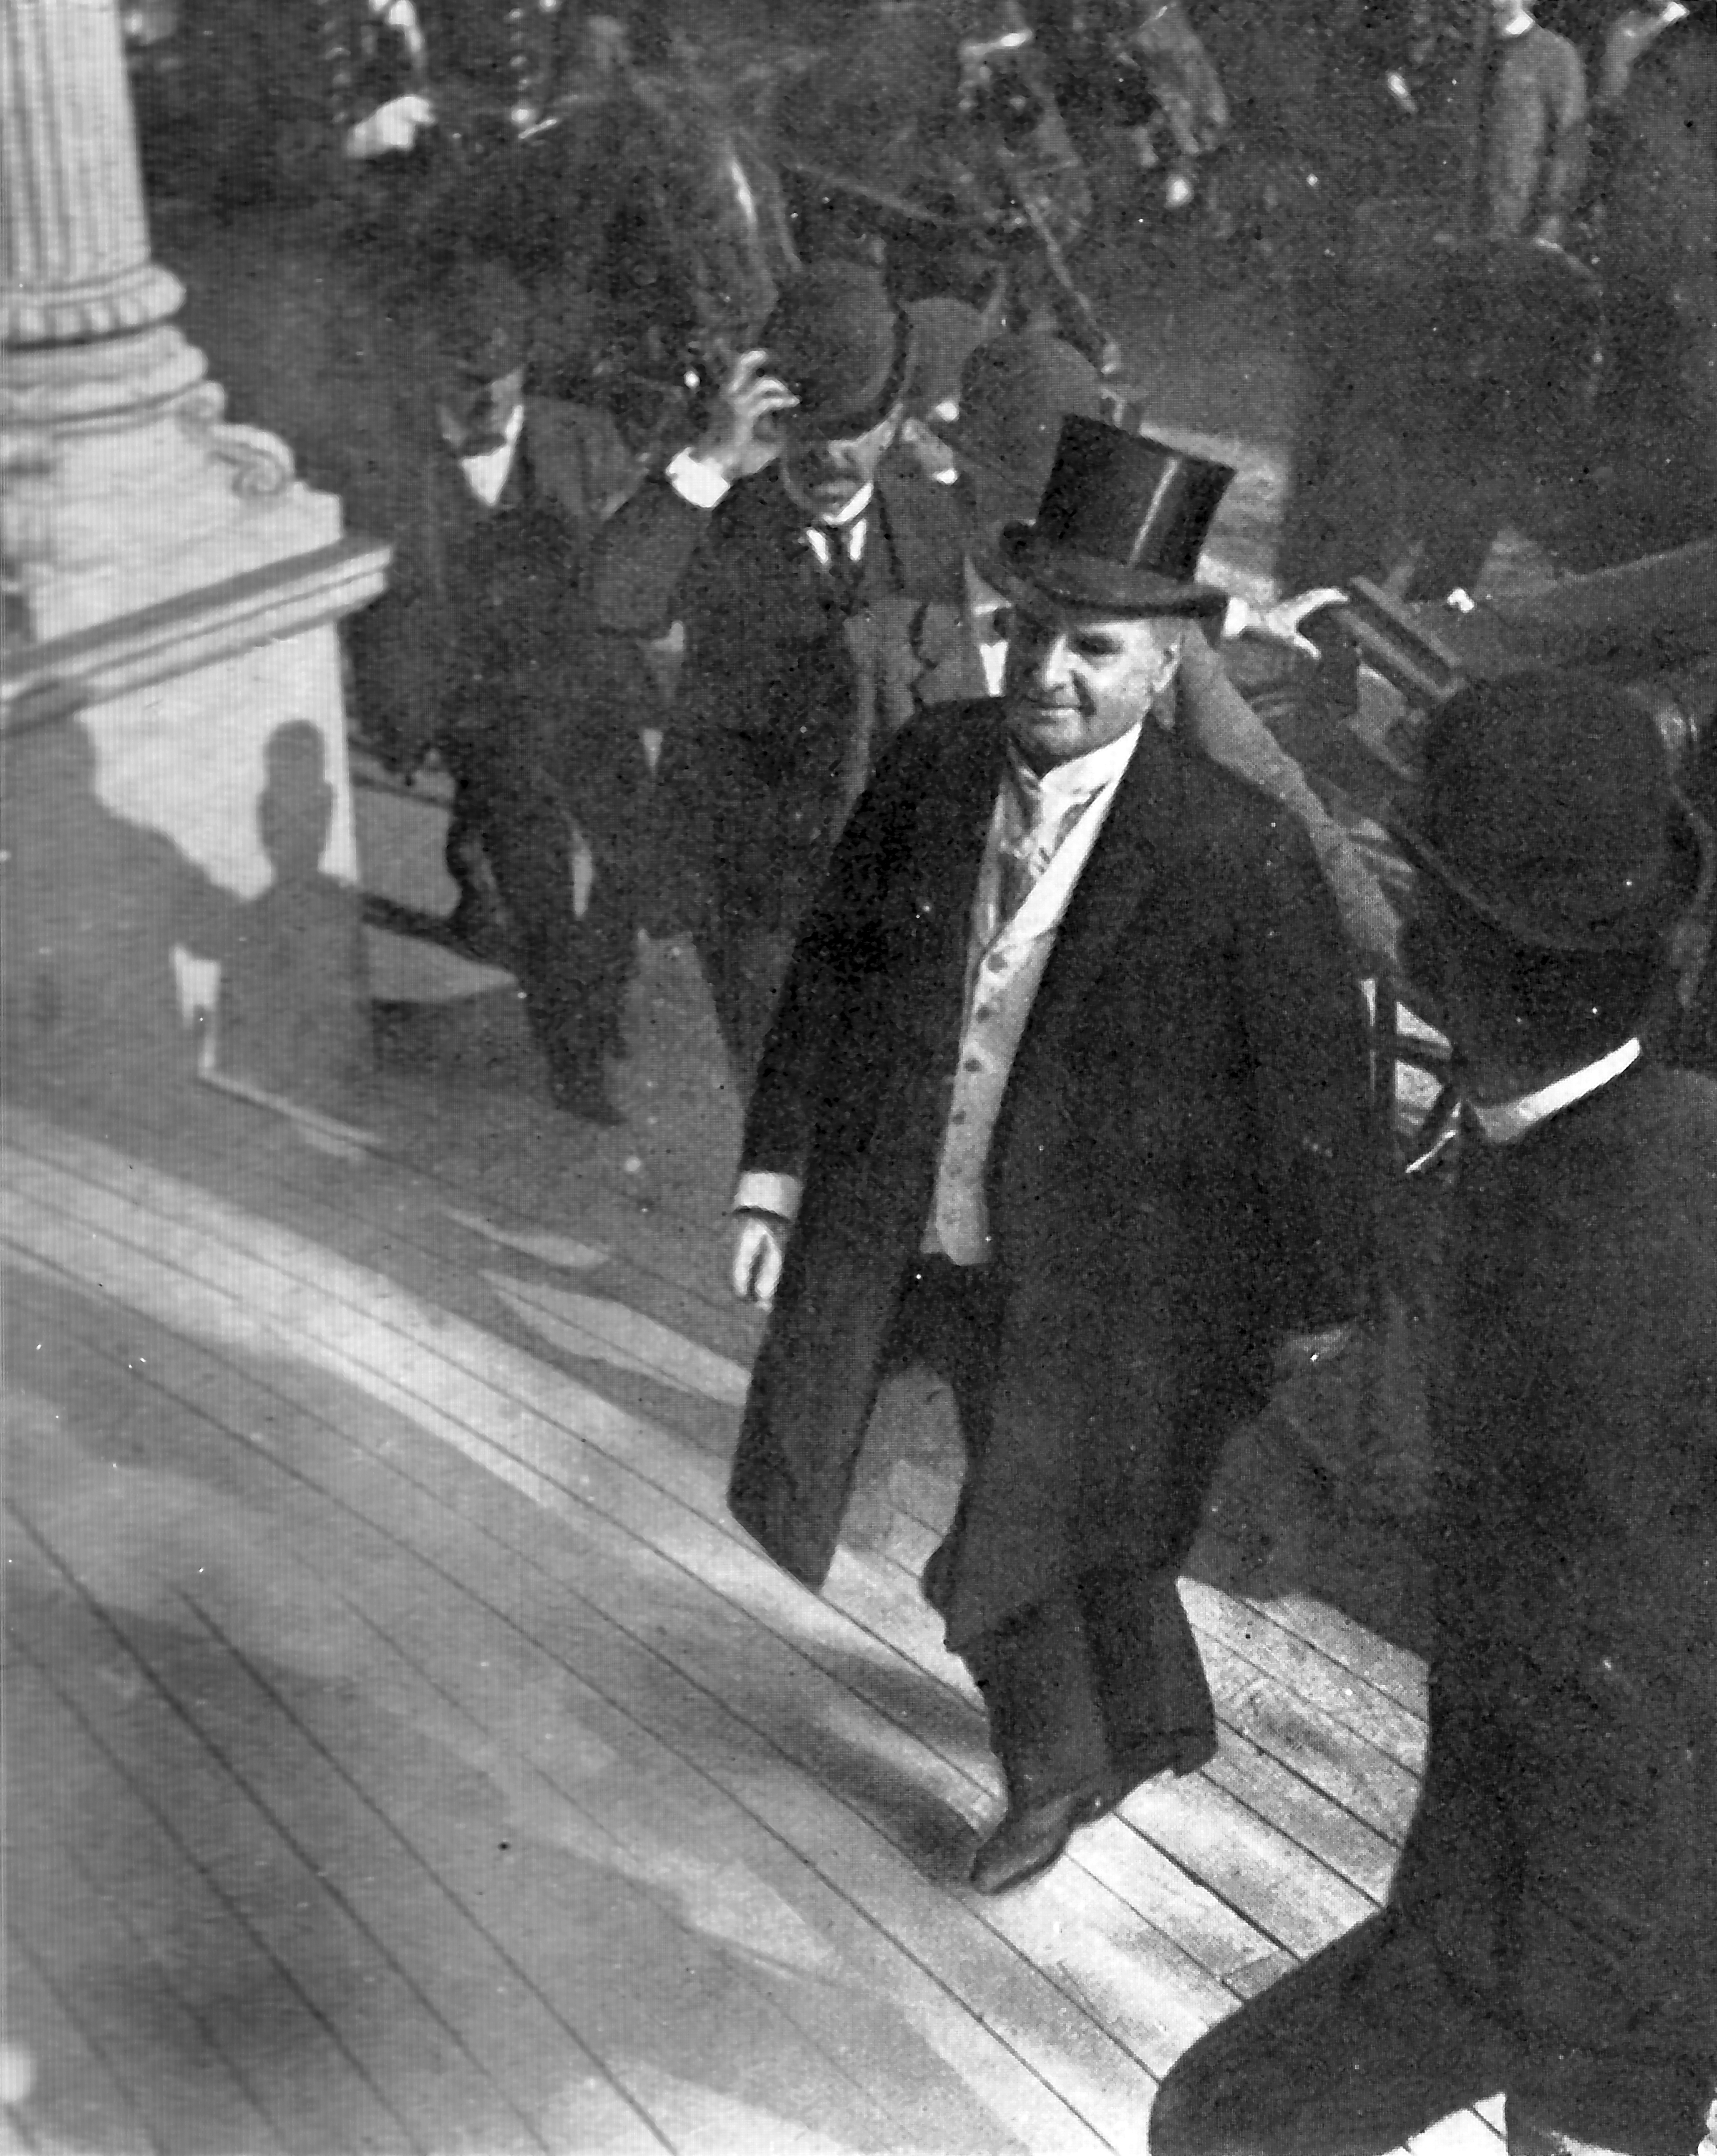 One of the last photographs of the late President McKinley. Taken as he was ascending the steps of the Temple of Music, September 6, 1901.